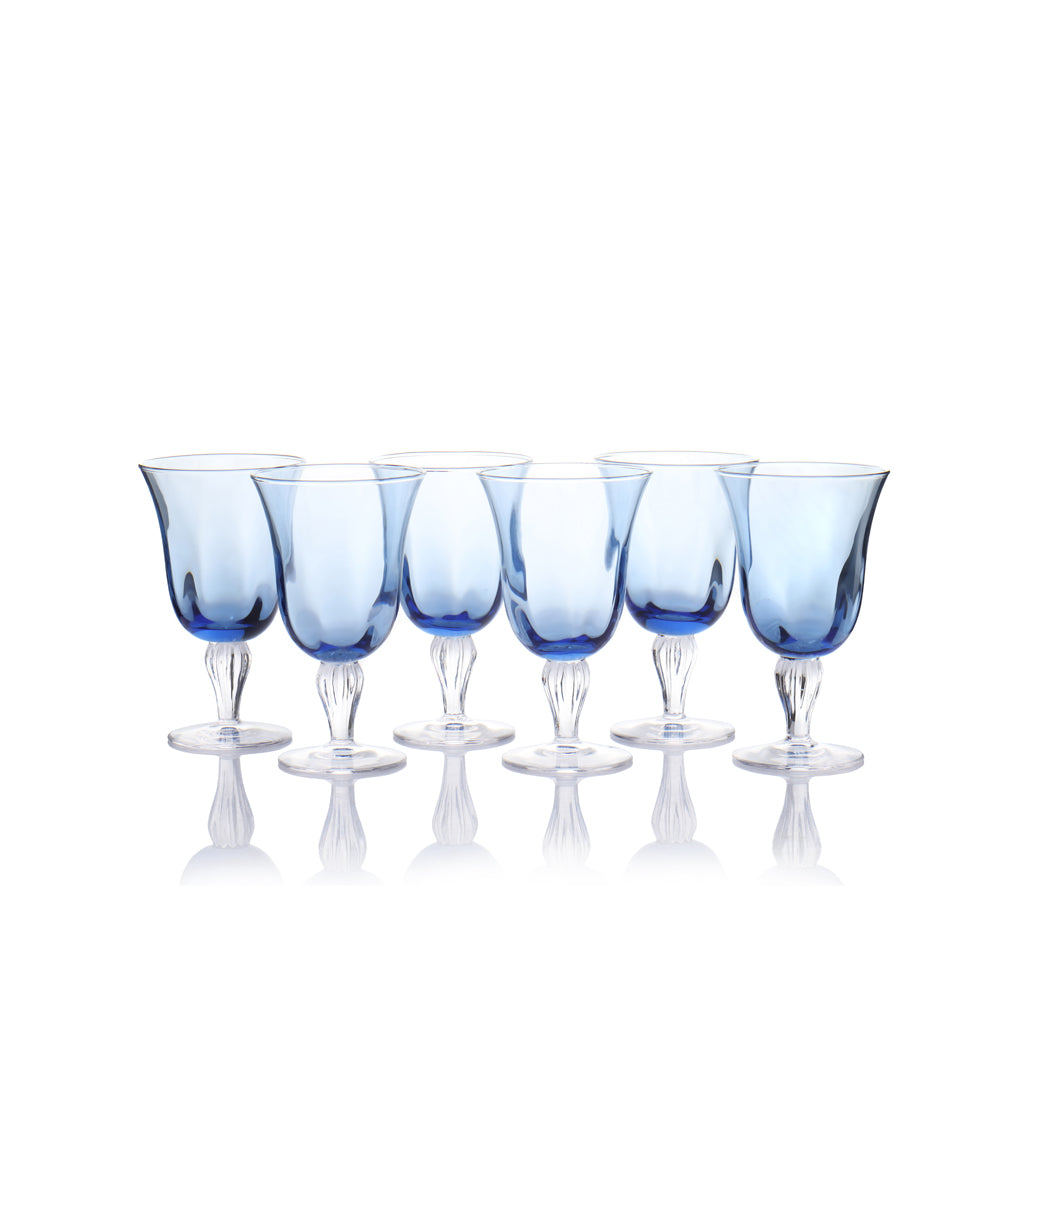 Jaspal Irob Blue Goblet Set of 6